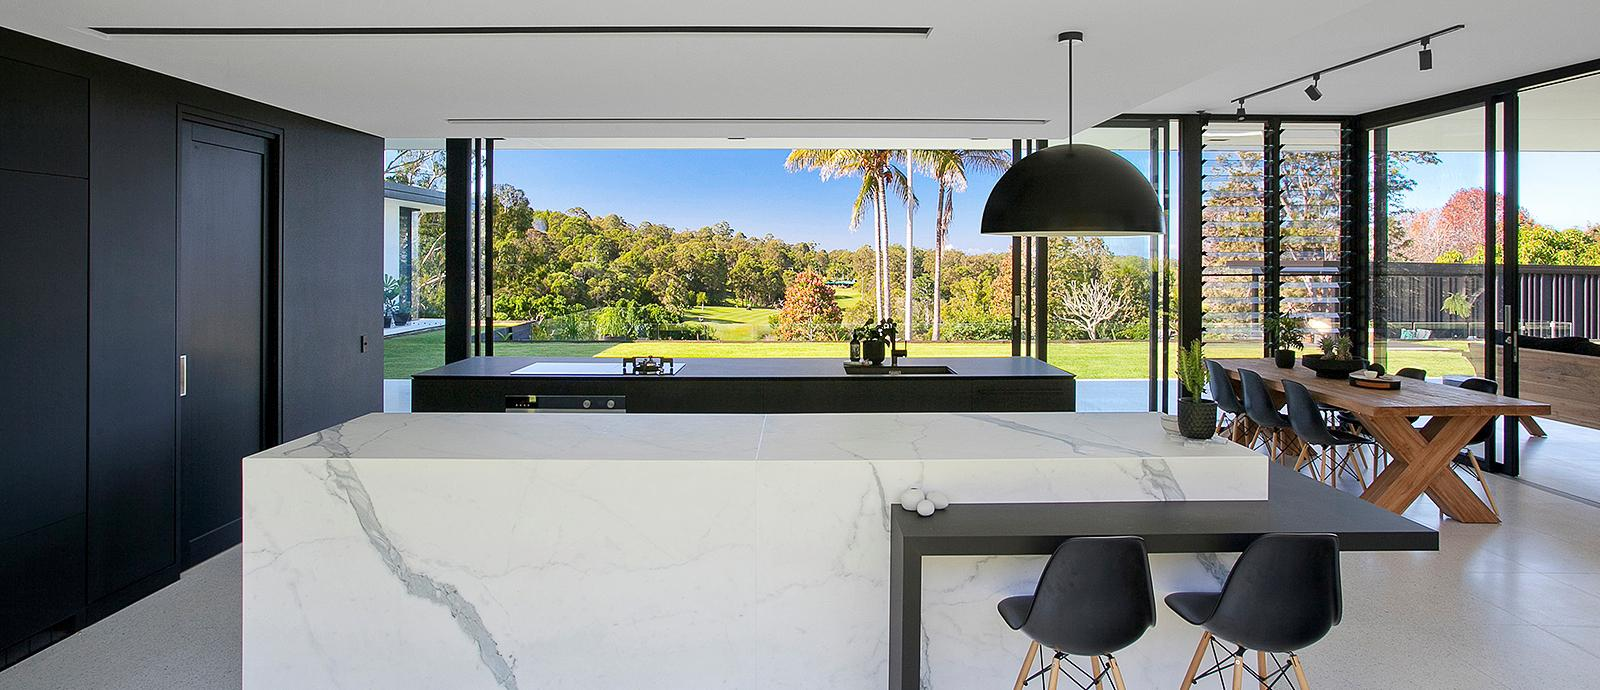 Sarah_Waller_Design_Hero_12_Doonan_Glasshouse_Kitchen_image_1600_1